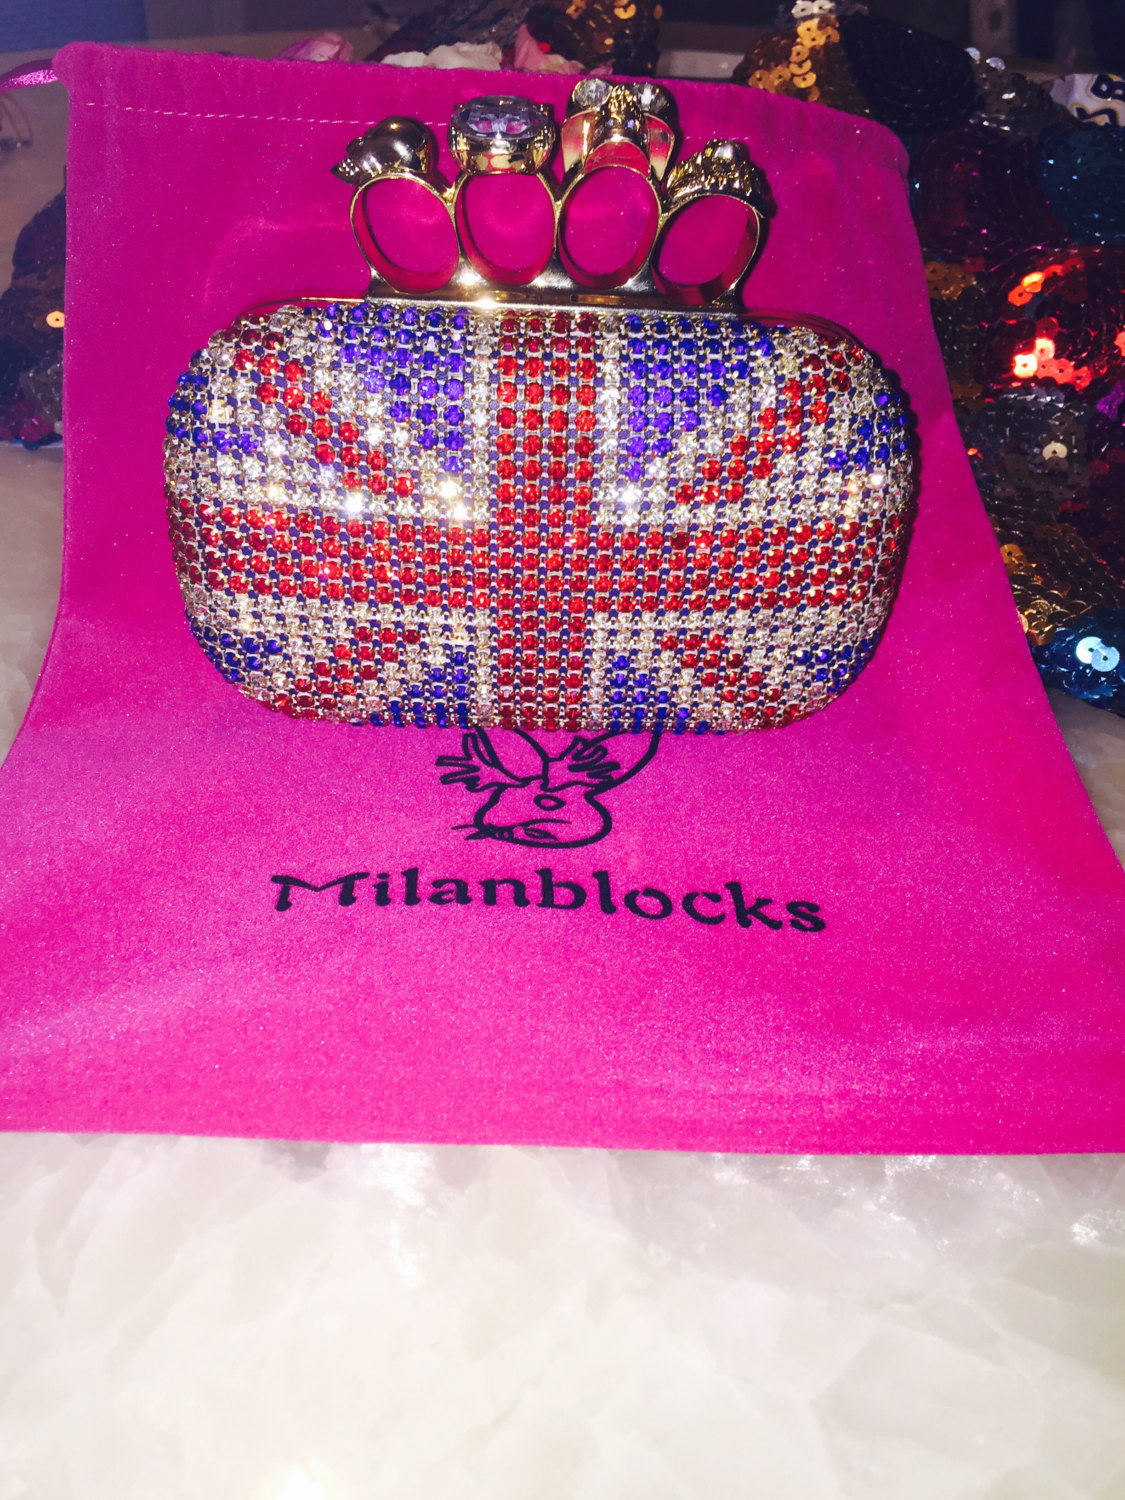 Skull knuckle ring box bead evening clutch bridal wedding unique union jack swaroski party gift clutch custom purse milanblocks brand